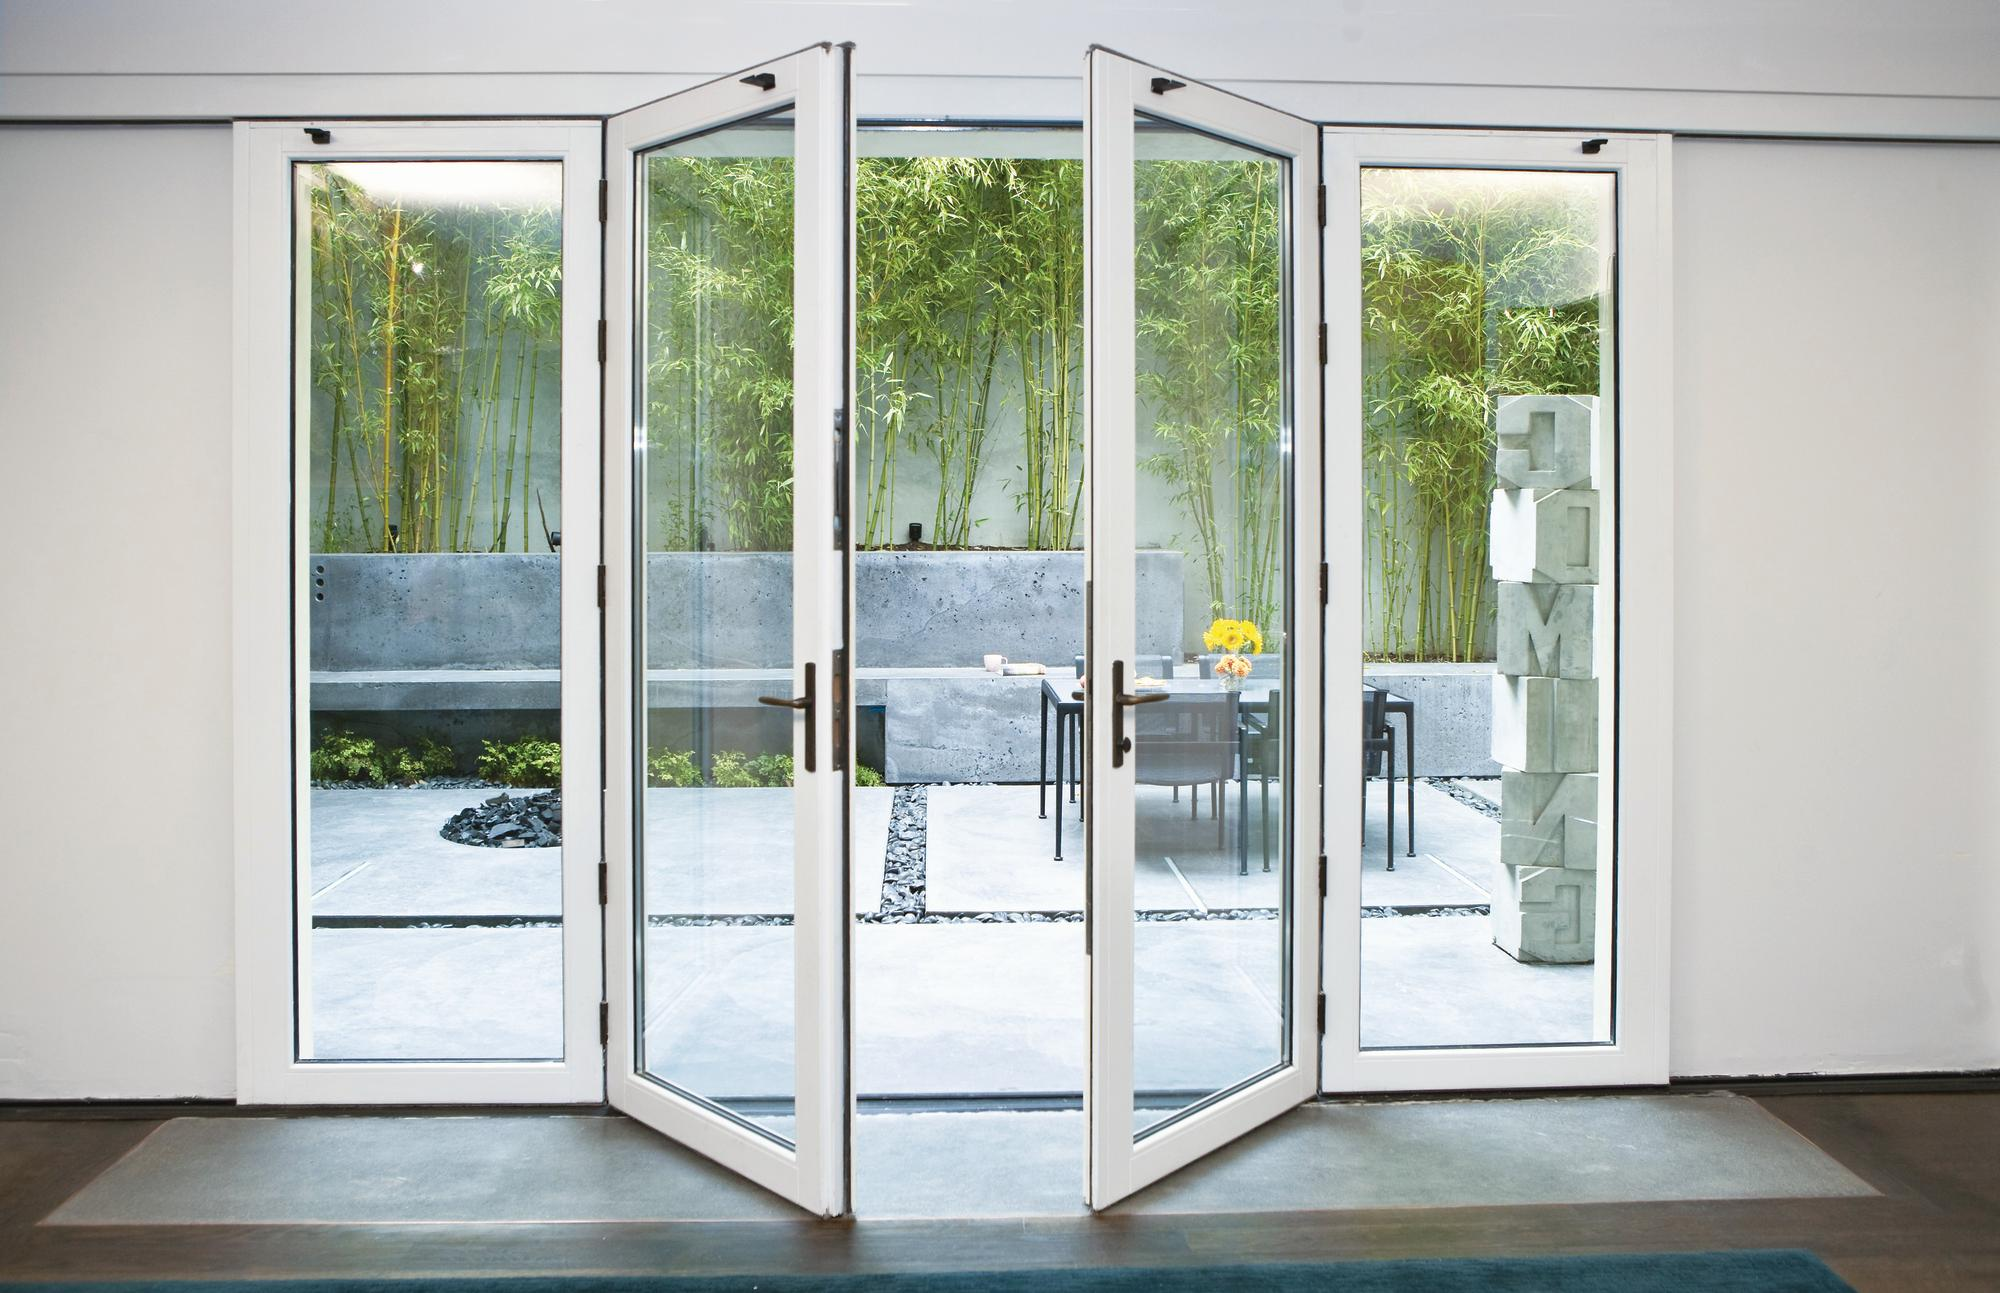 Nana wall systems vsw65 single track sliding system with for Sliding glass door to french door